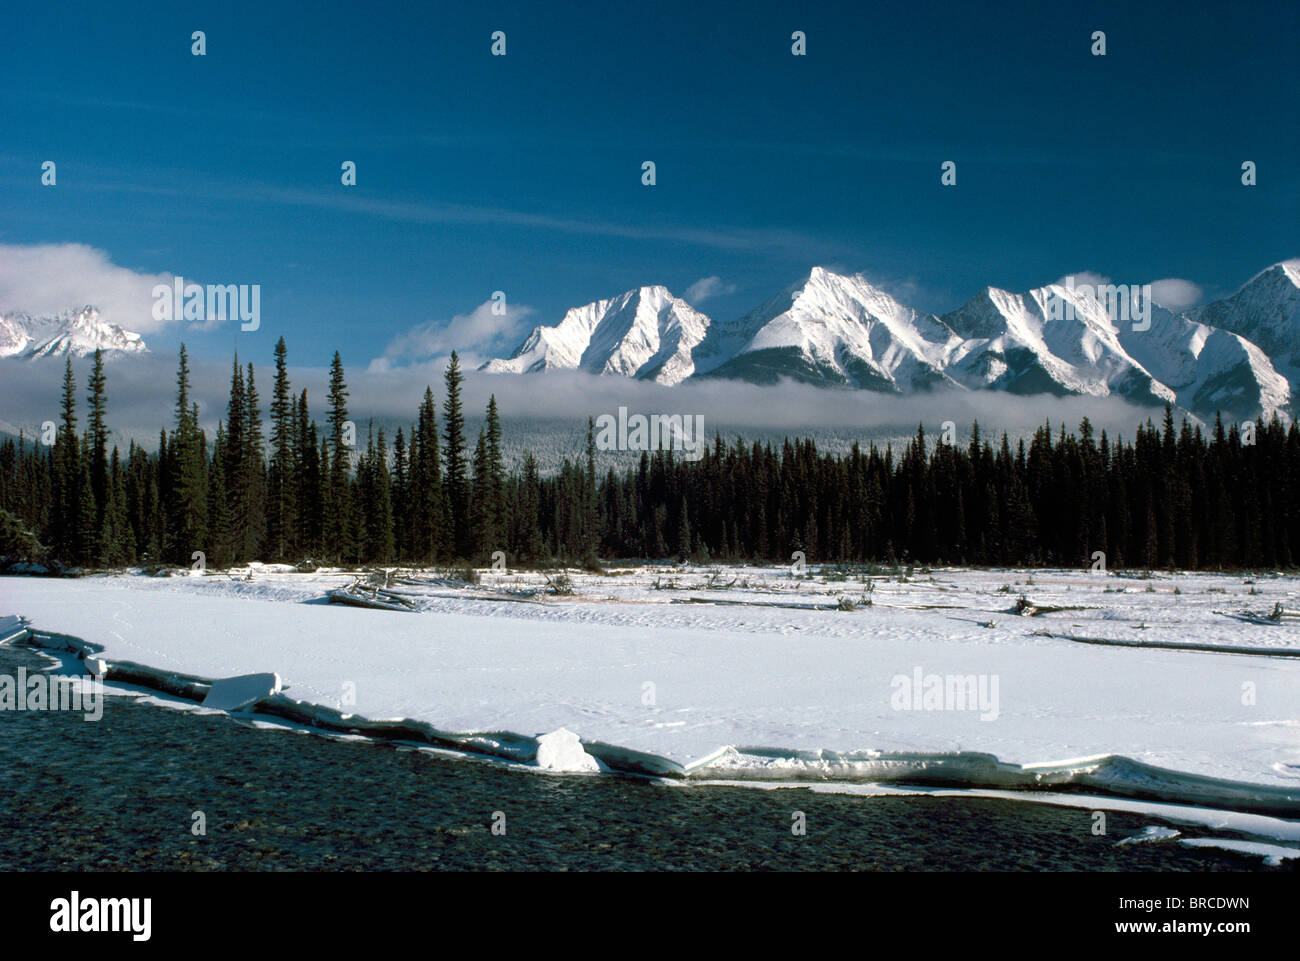 Canadian rockies kootenay national park british columbia canada canadian rockies kootenay national park british columbia canada kootenay river and mitchell range rocky mountains winter sciox Image collections